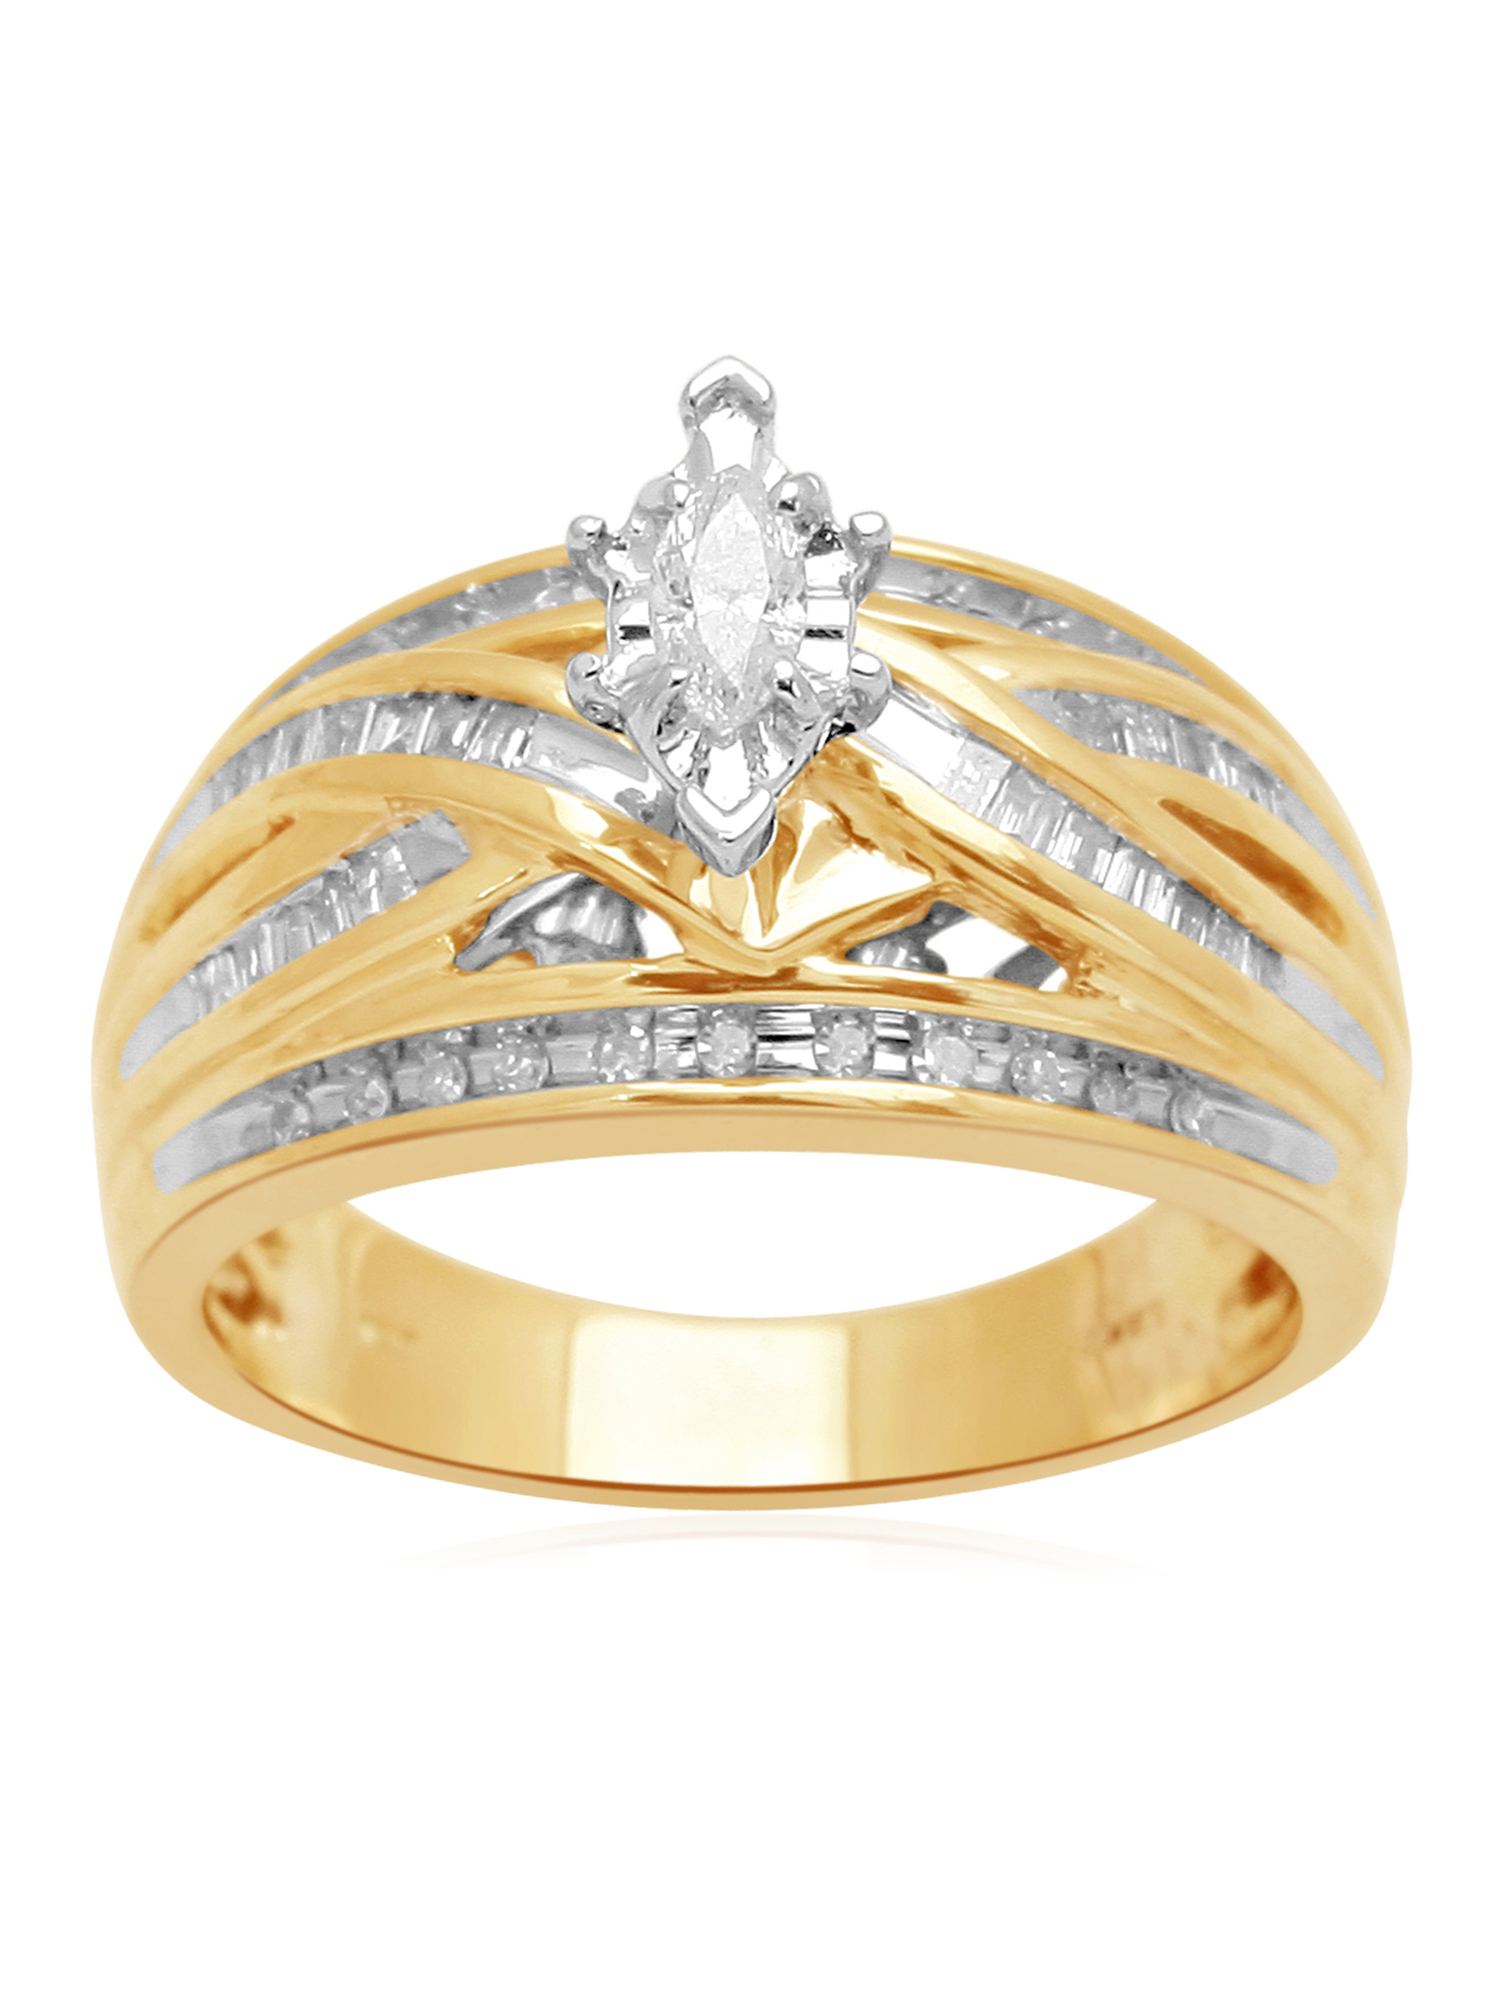 1/2 Carat T.W. Diamond 14kt Yellow Gold Bridal Ring